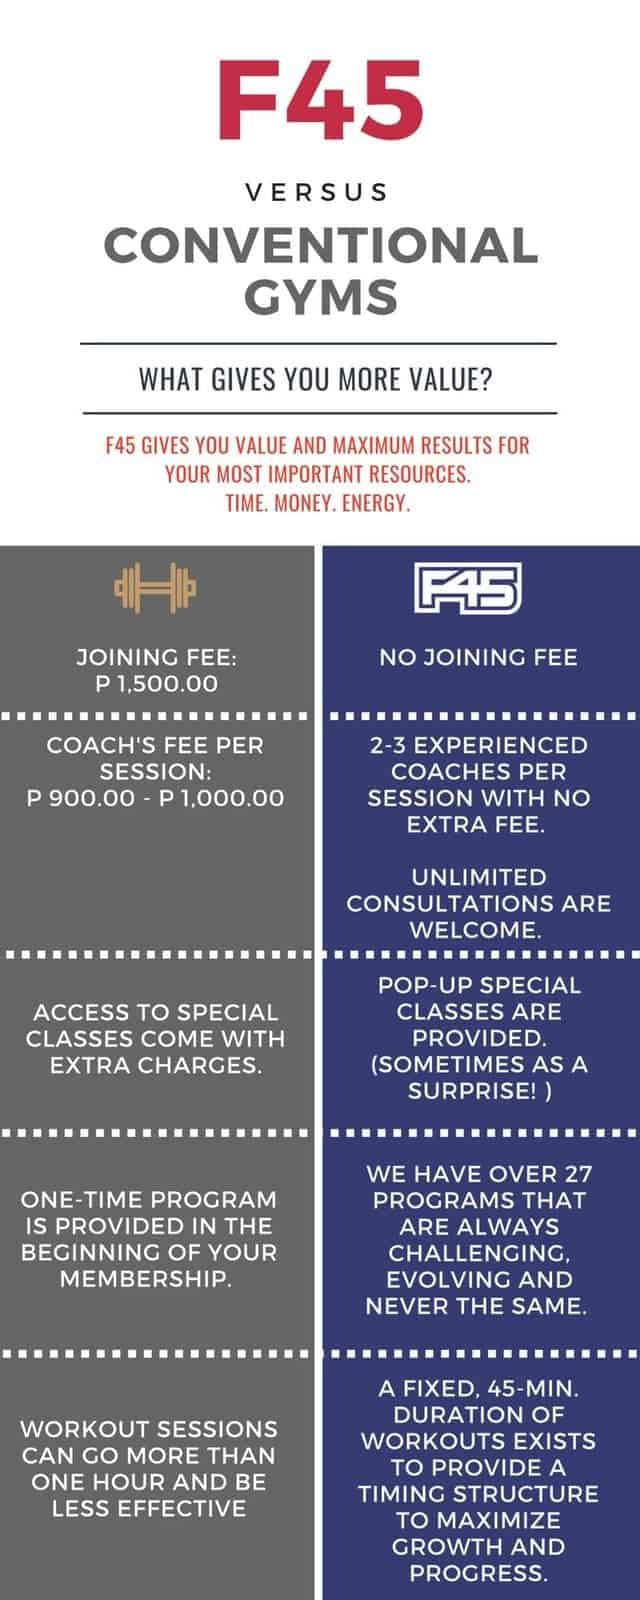 F45 Training Gym Cebu (2)